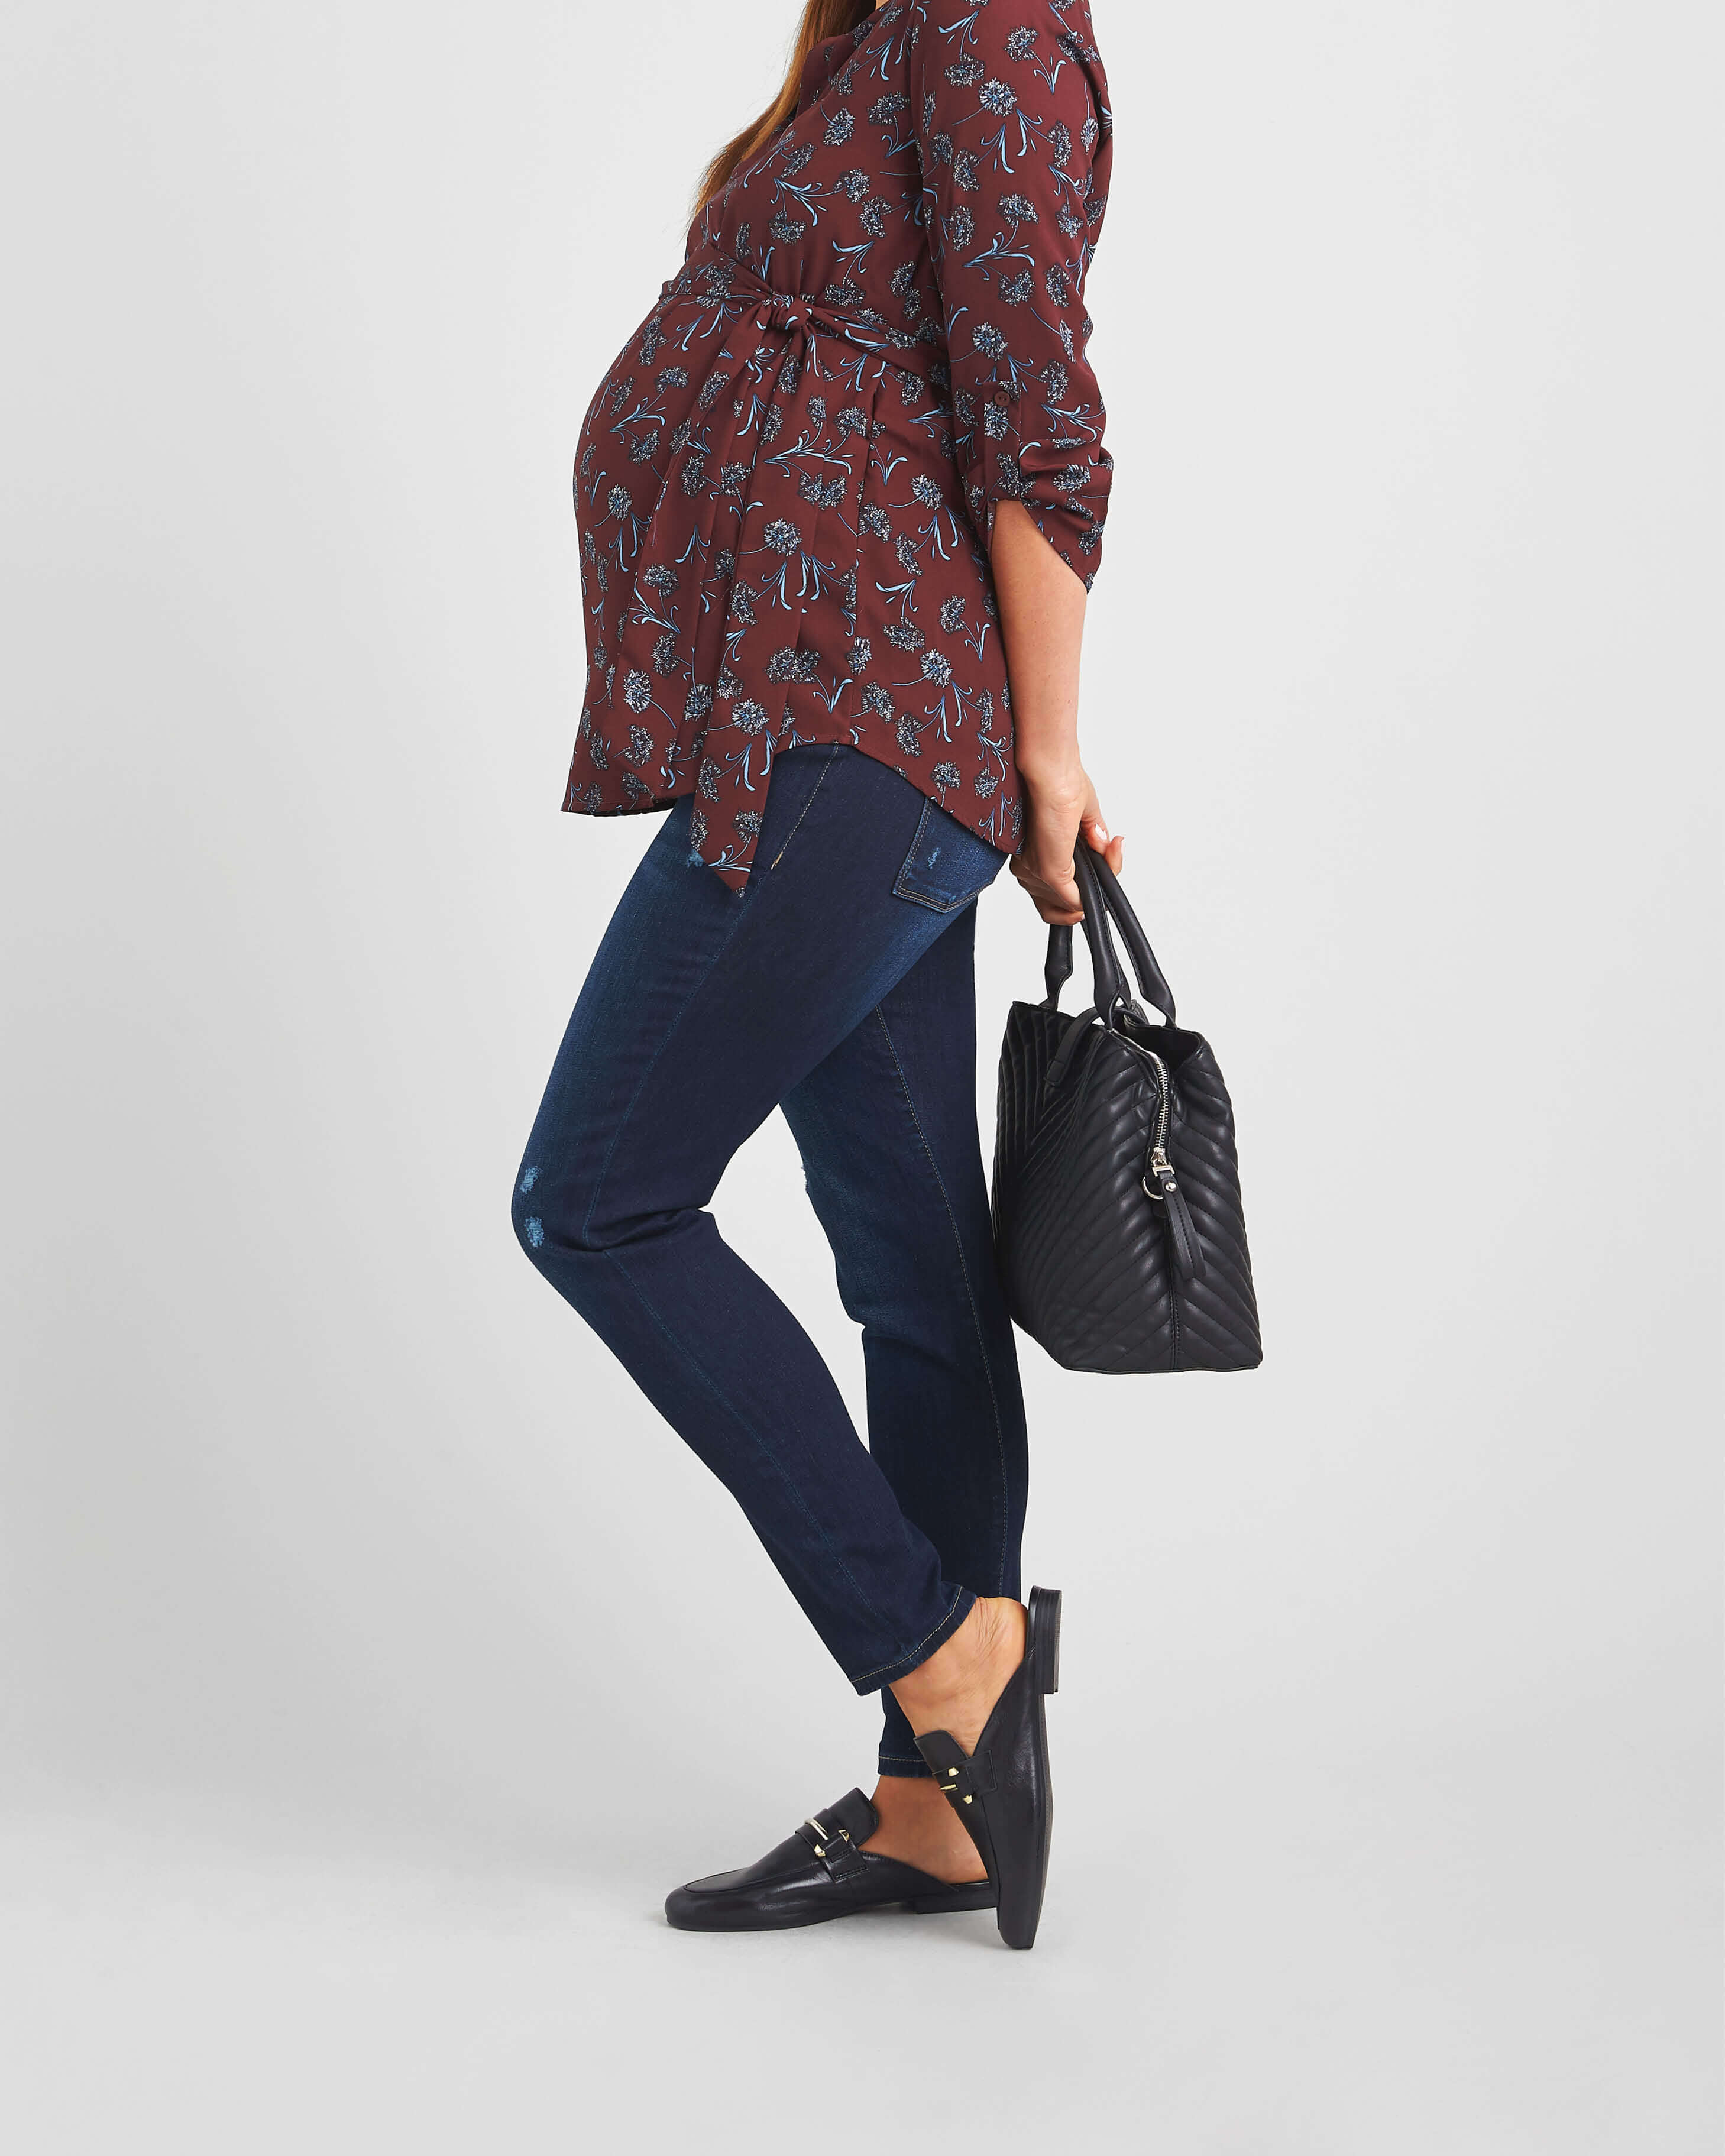 maternity jeans, how to find maternity jeans